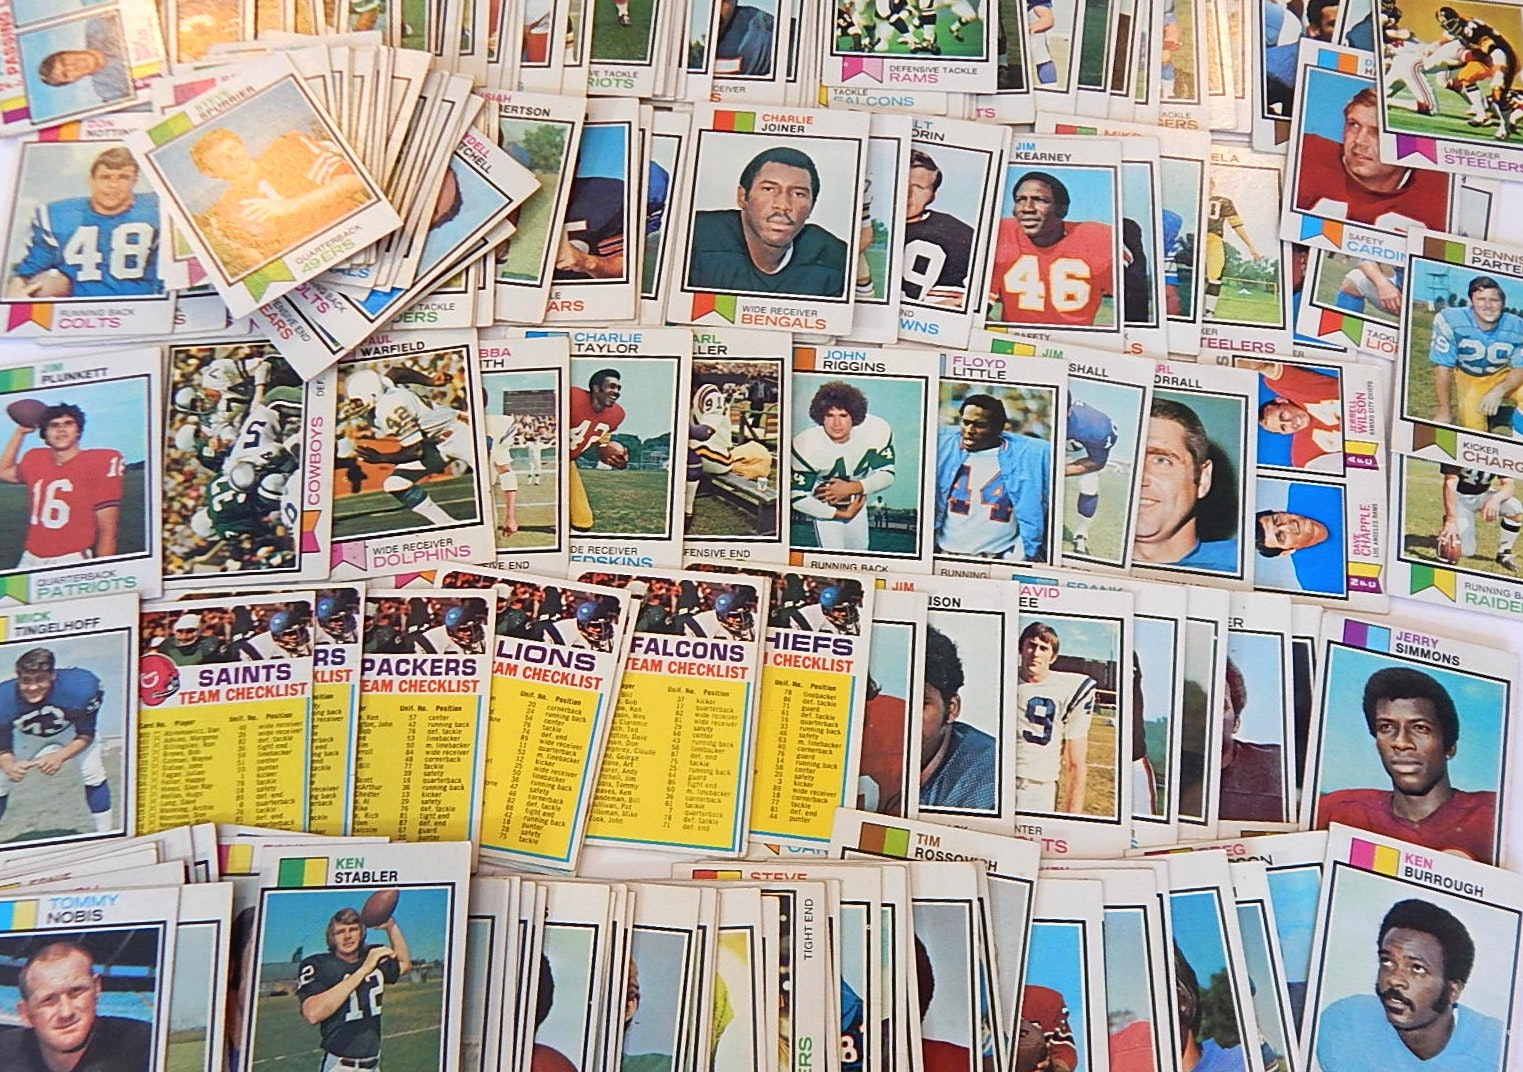 1973 Topps Football Card Collection with Ken Stabler Rookie